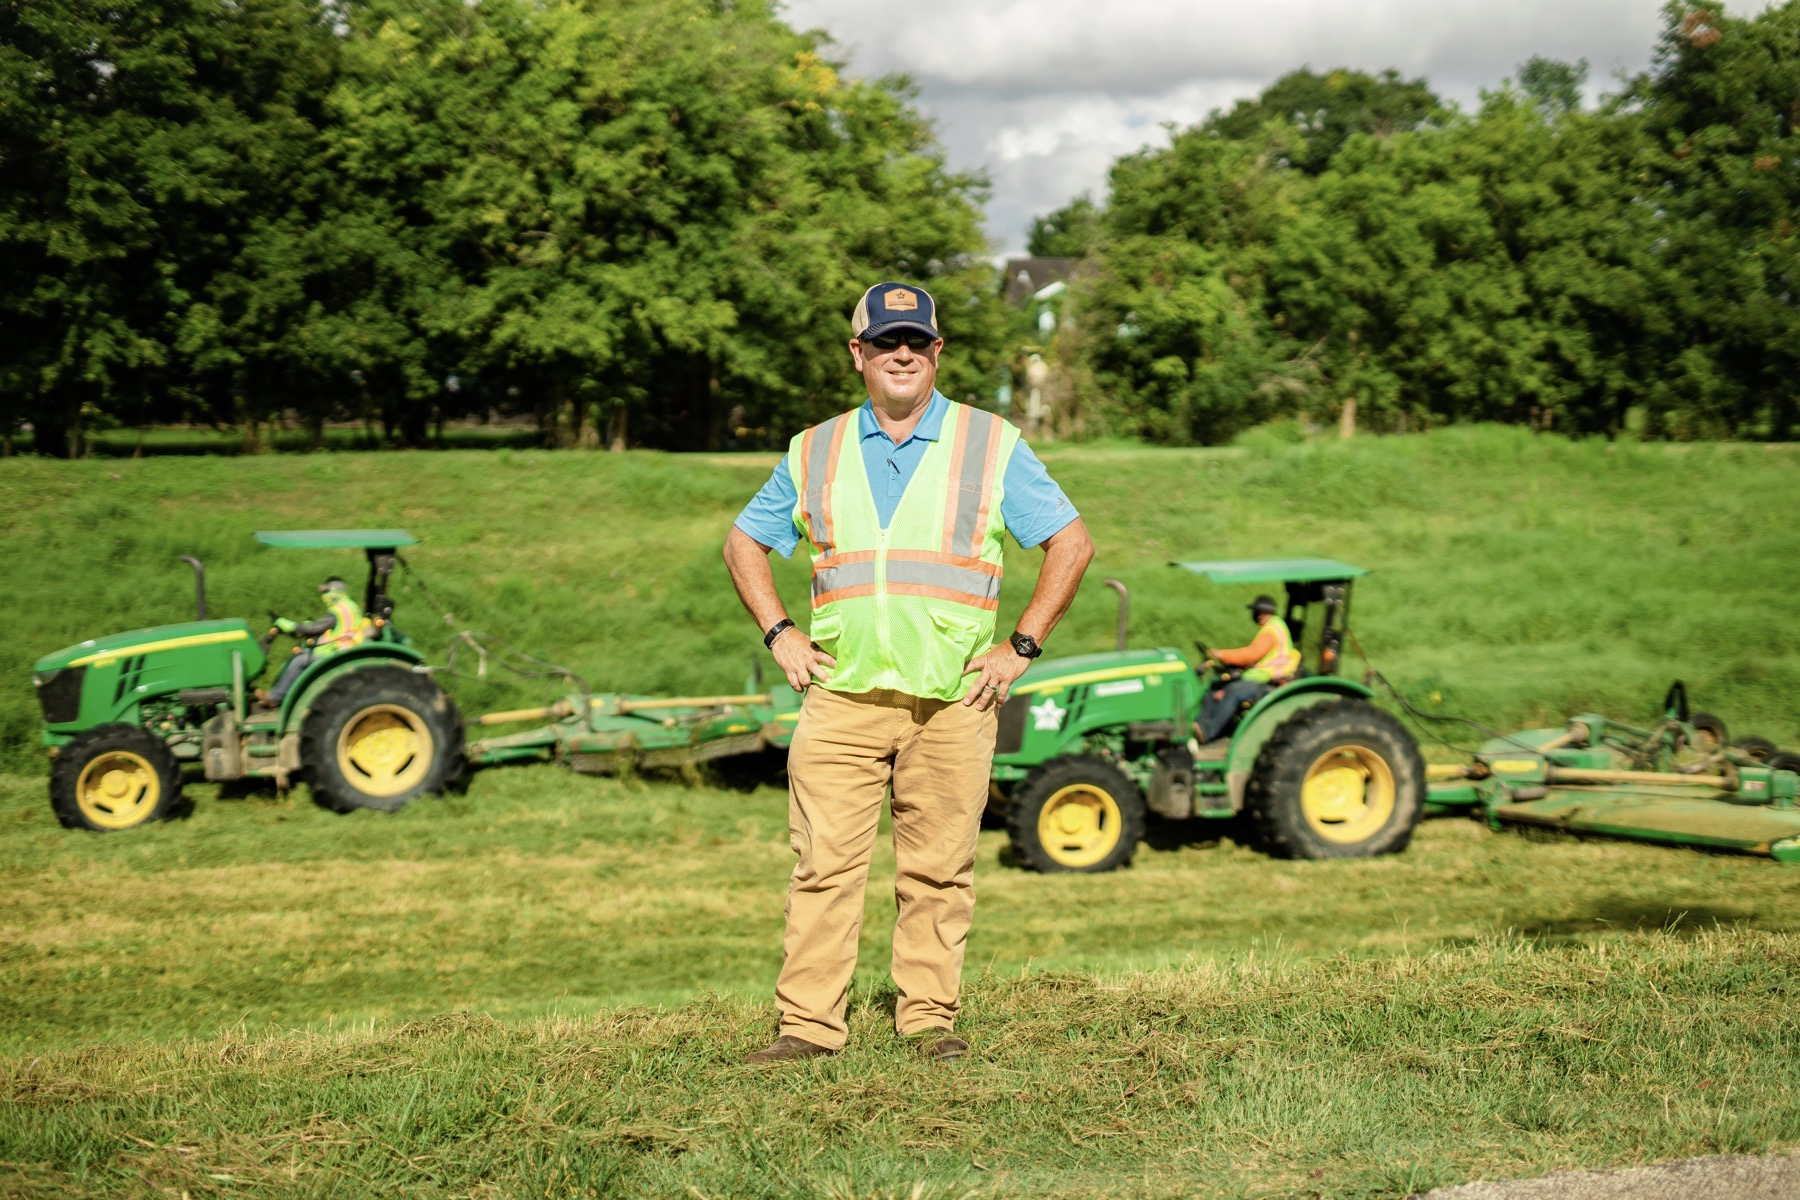 commercial mowing operations manager